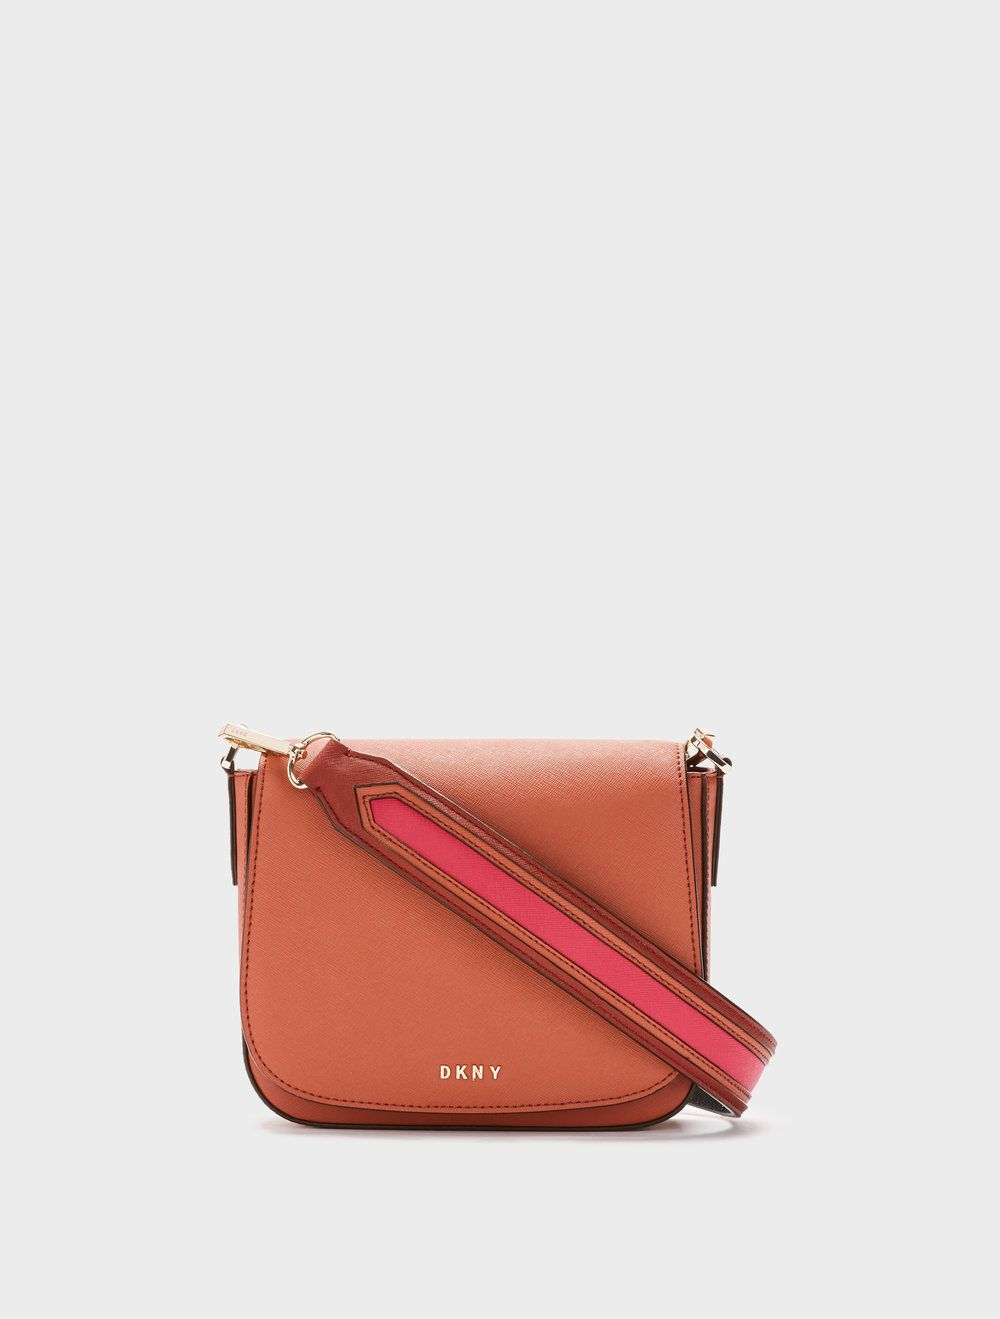 65f317b8ebc Terracotta leather Saffiano Contrast Strap Crossbody from DKNY. Dkny Bags,  Online Clothing Stores,